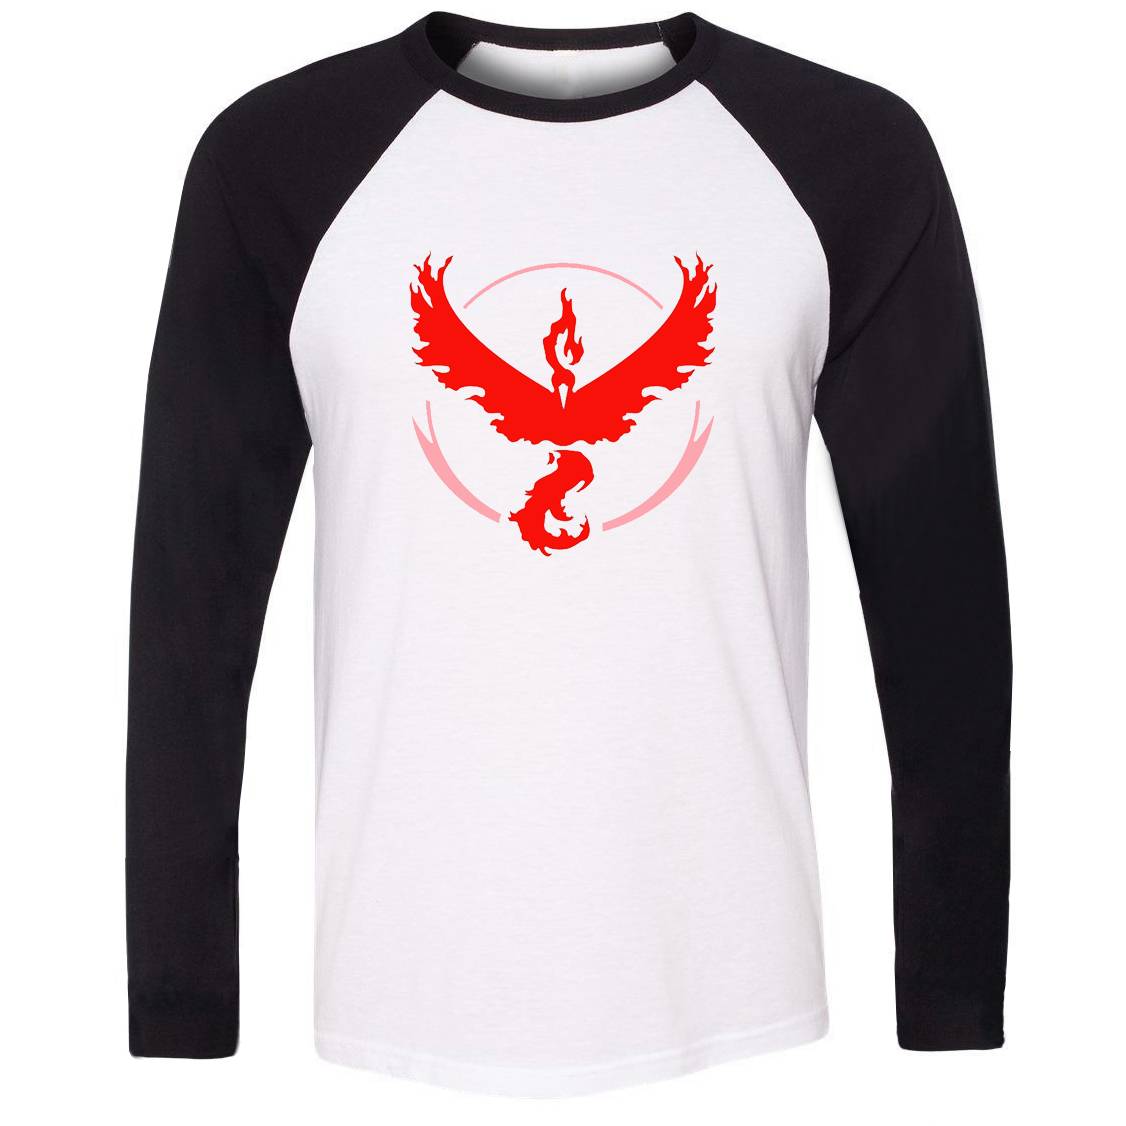 iDzn New Hot Unisex T-shirt Pokemon Go Game Fans Moltres Team Red Team Pattern Raglan Lo ...